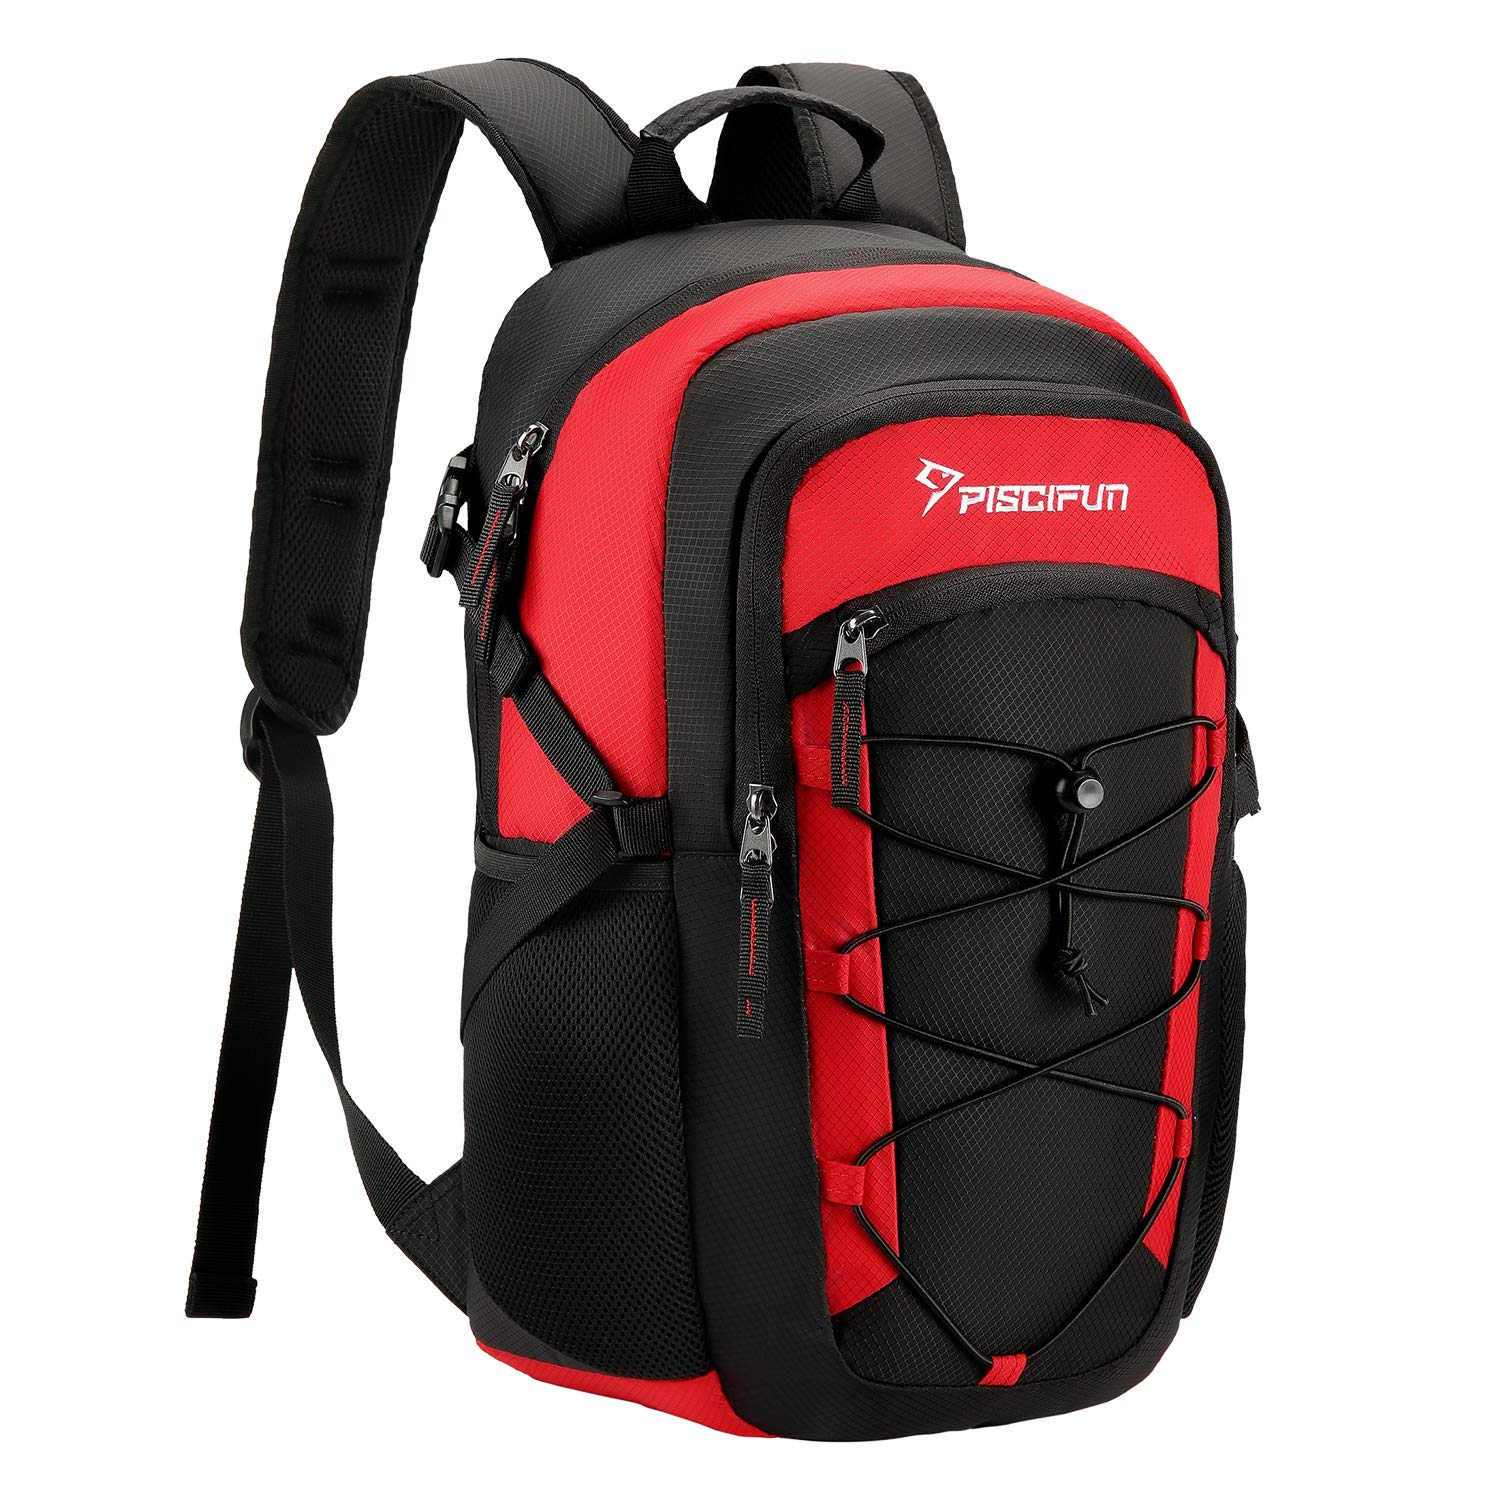 The Piscifun Insulated Cooler Backpack travel product recommended by Leah Hazelwood on Lifney.